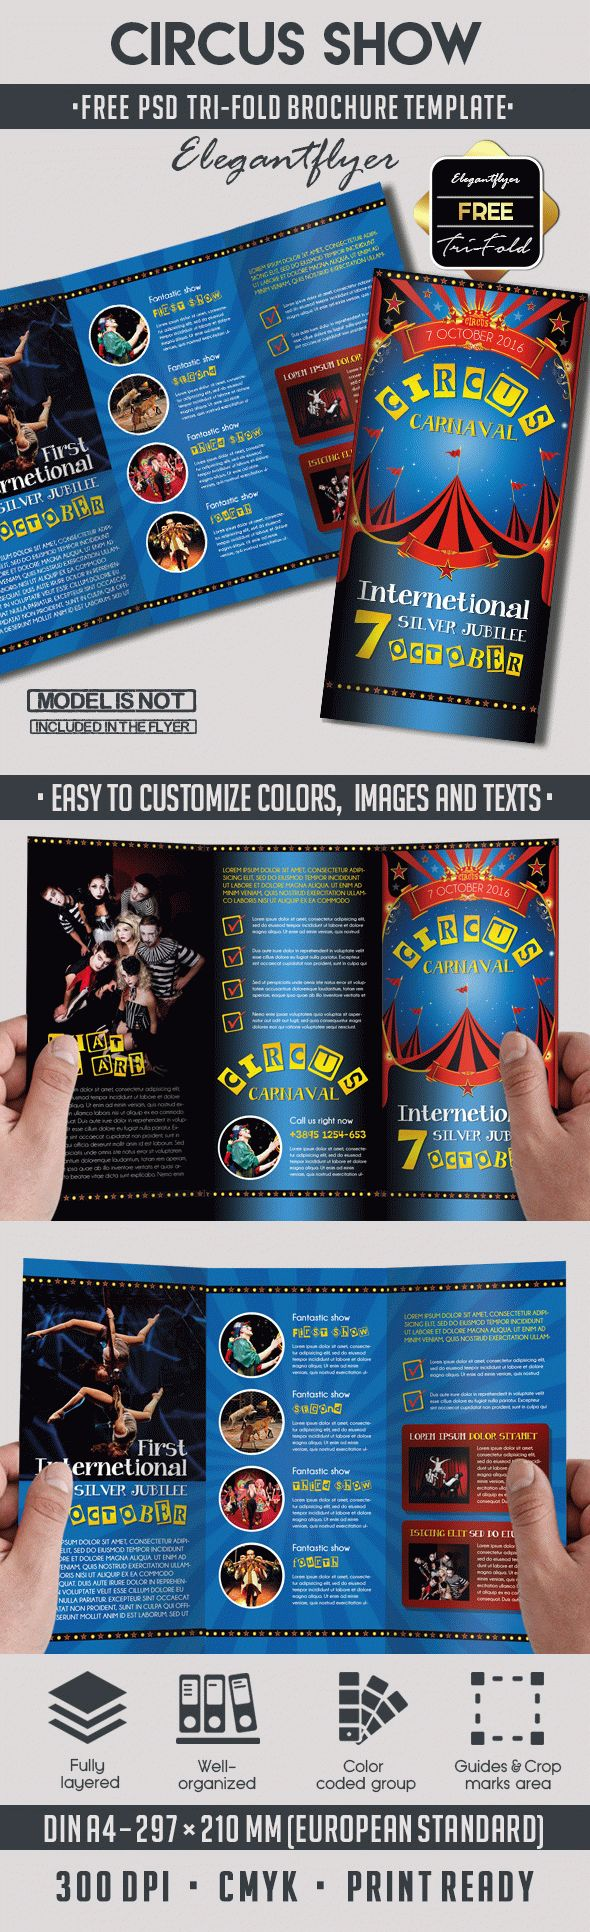 Circus free psd tri fold psd brochure template by for Photoshop tri fold brochure template free